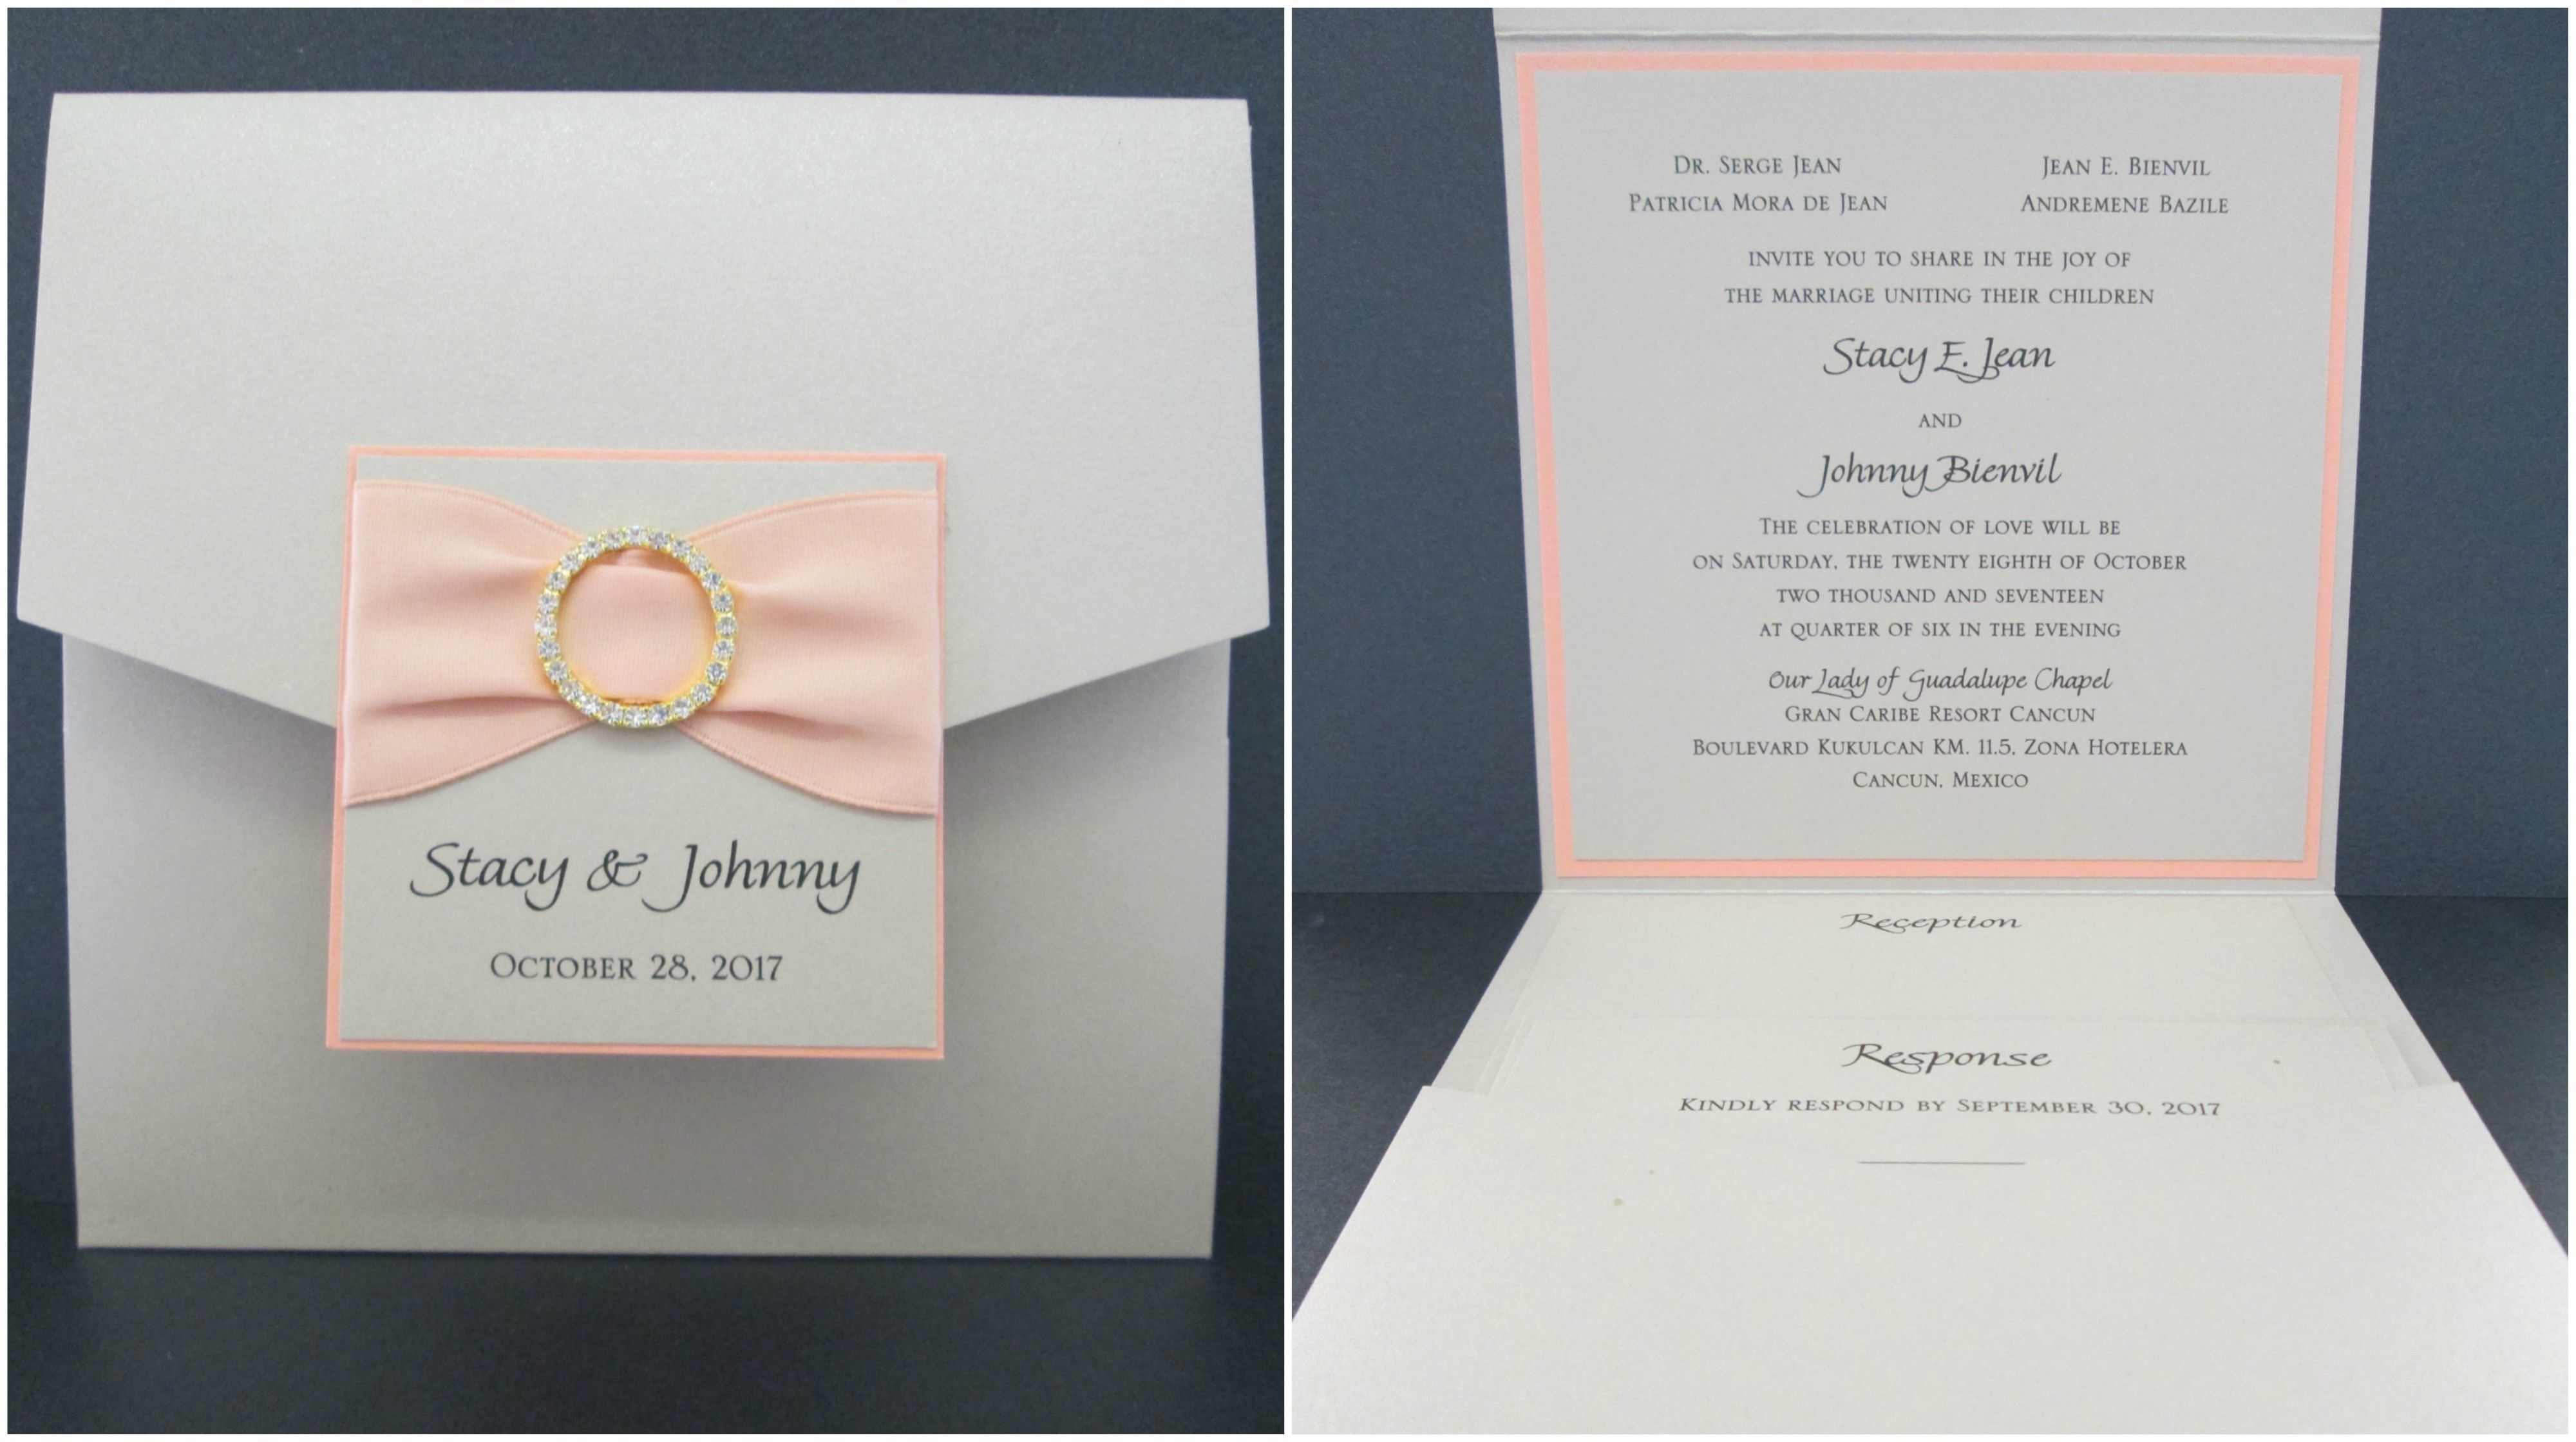 irish wedding invitations templates%0A Coral and Beige Pocket Invitation with Ribbon and Bling Closing Tag